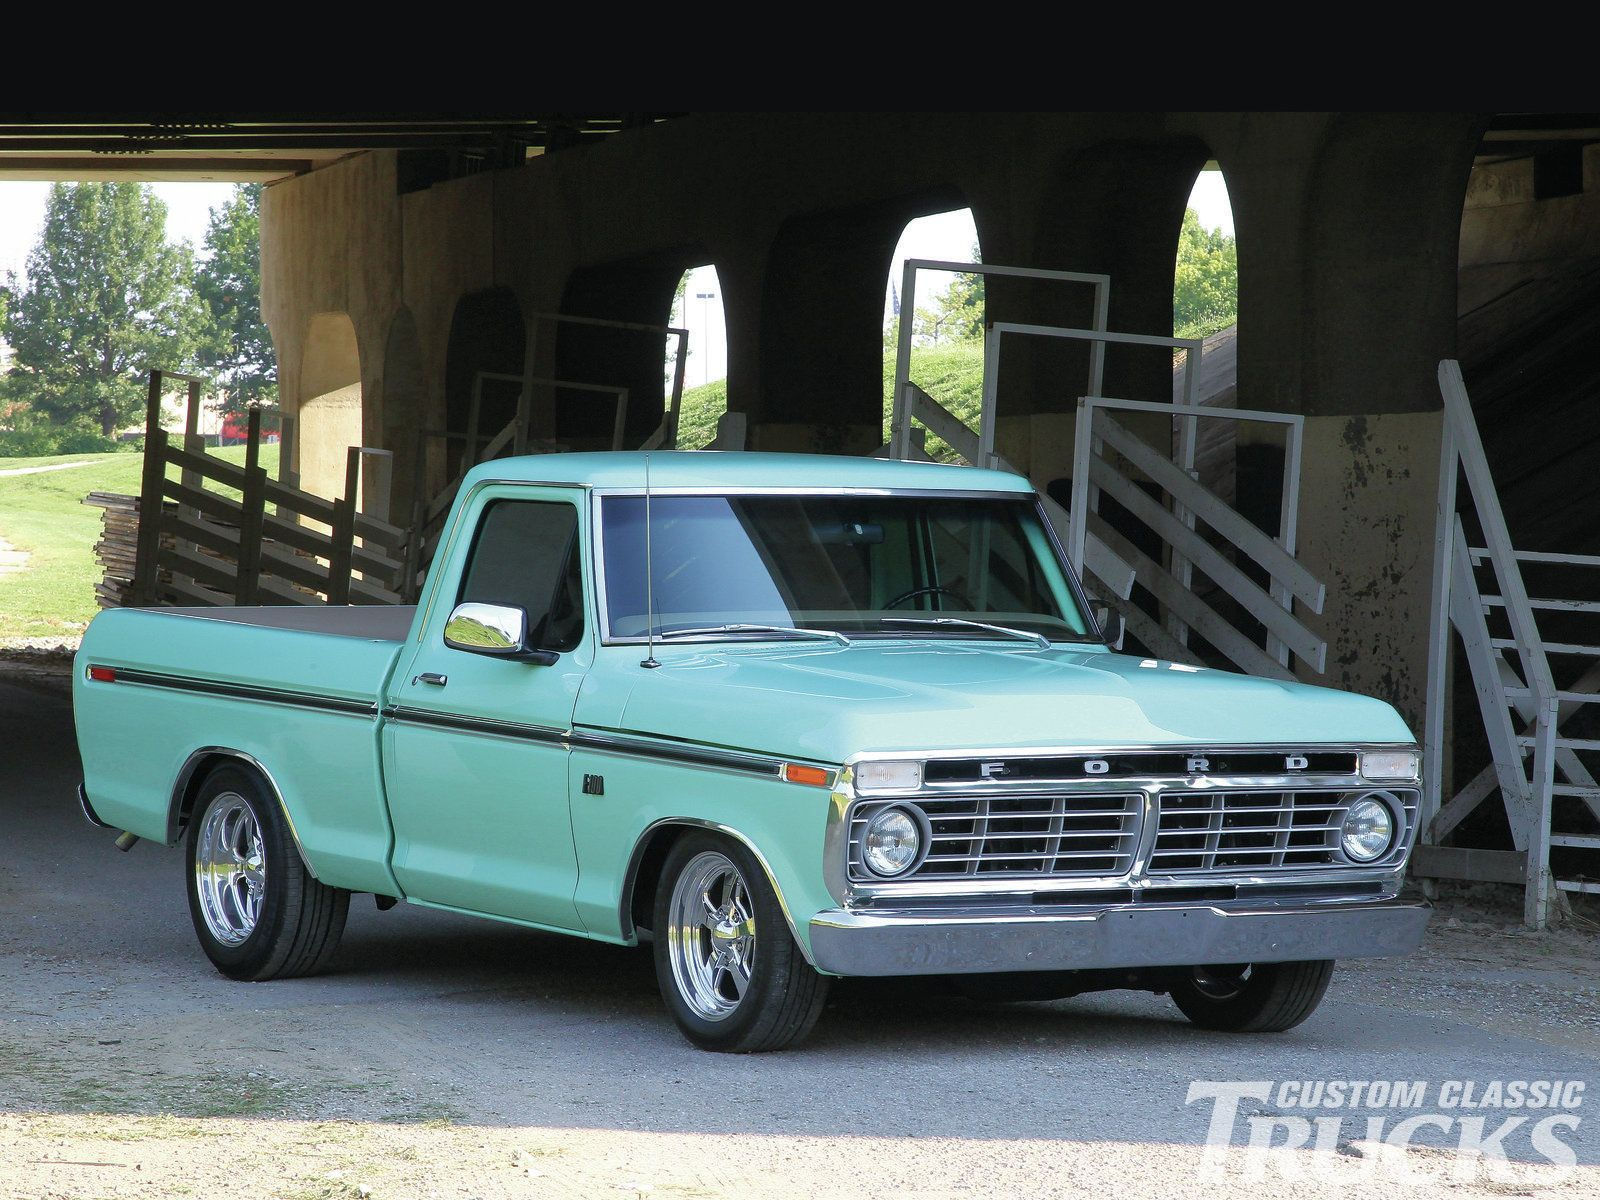 1301cct 01 o 1976 ford f 100 stock front end photo 1. Black Bedroom Furniture Sets. Home Design Ideas